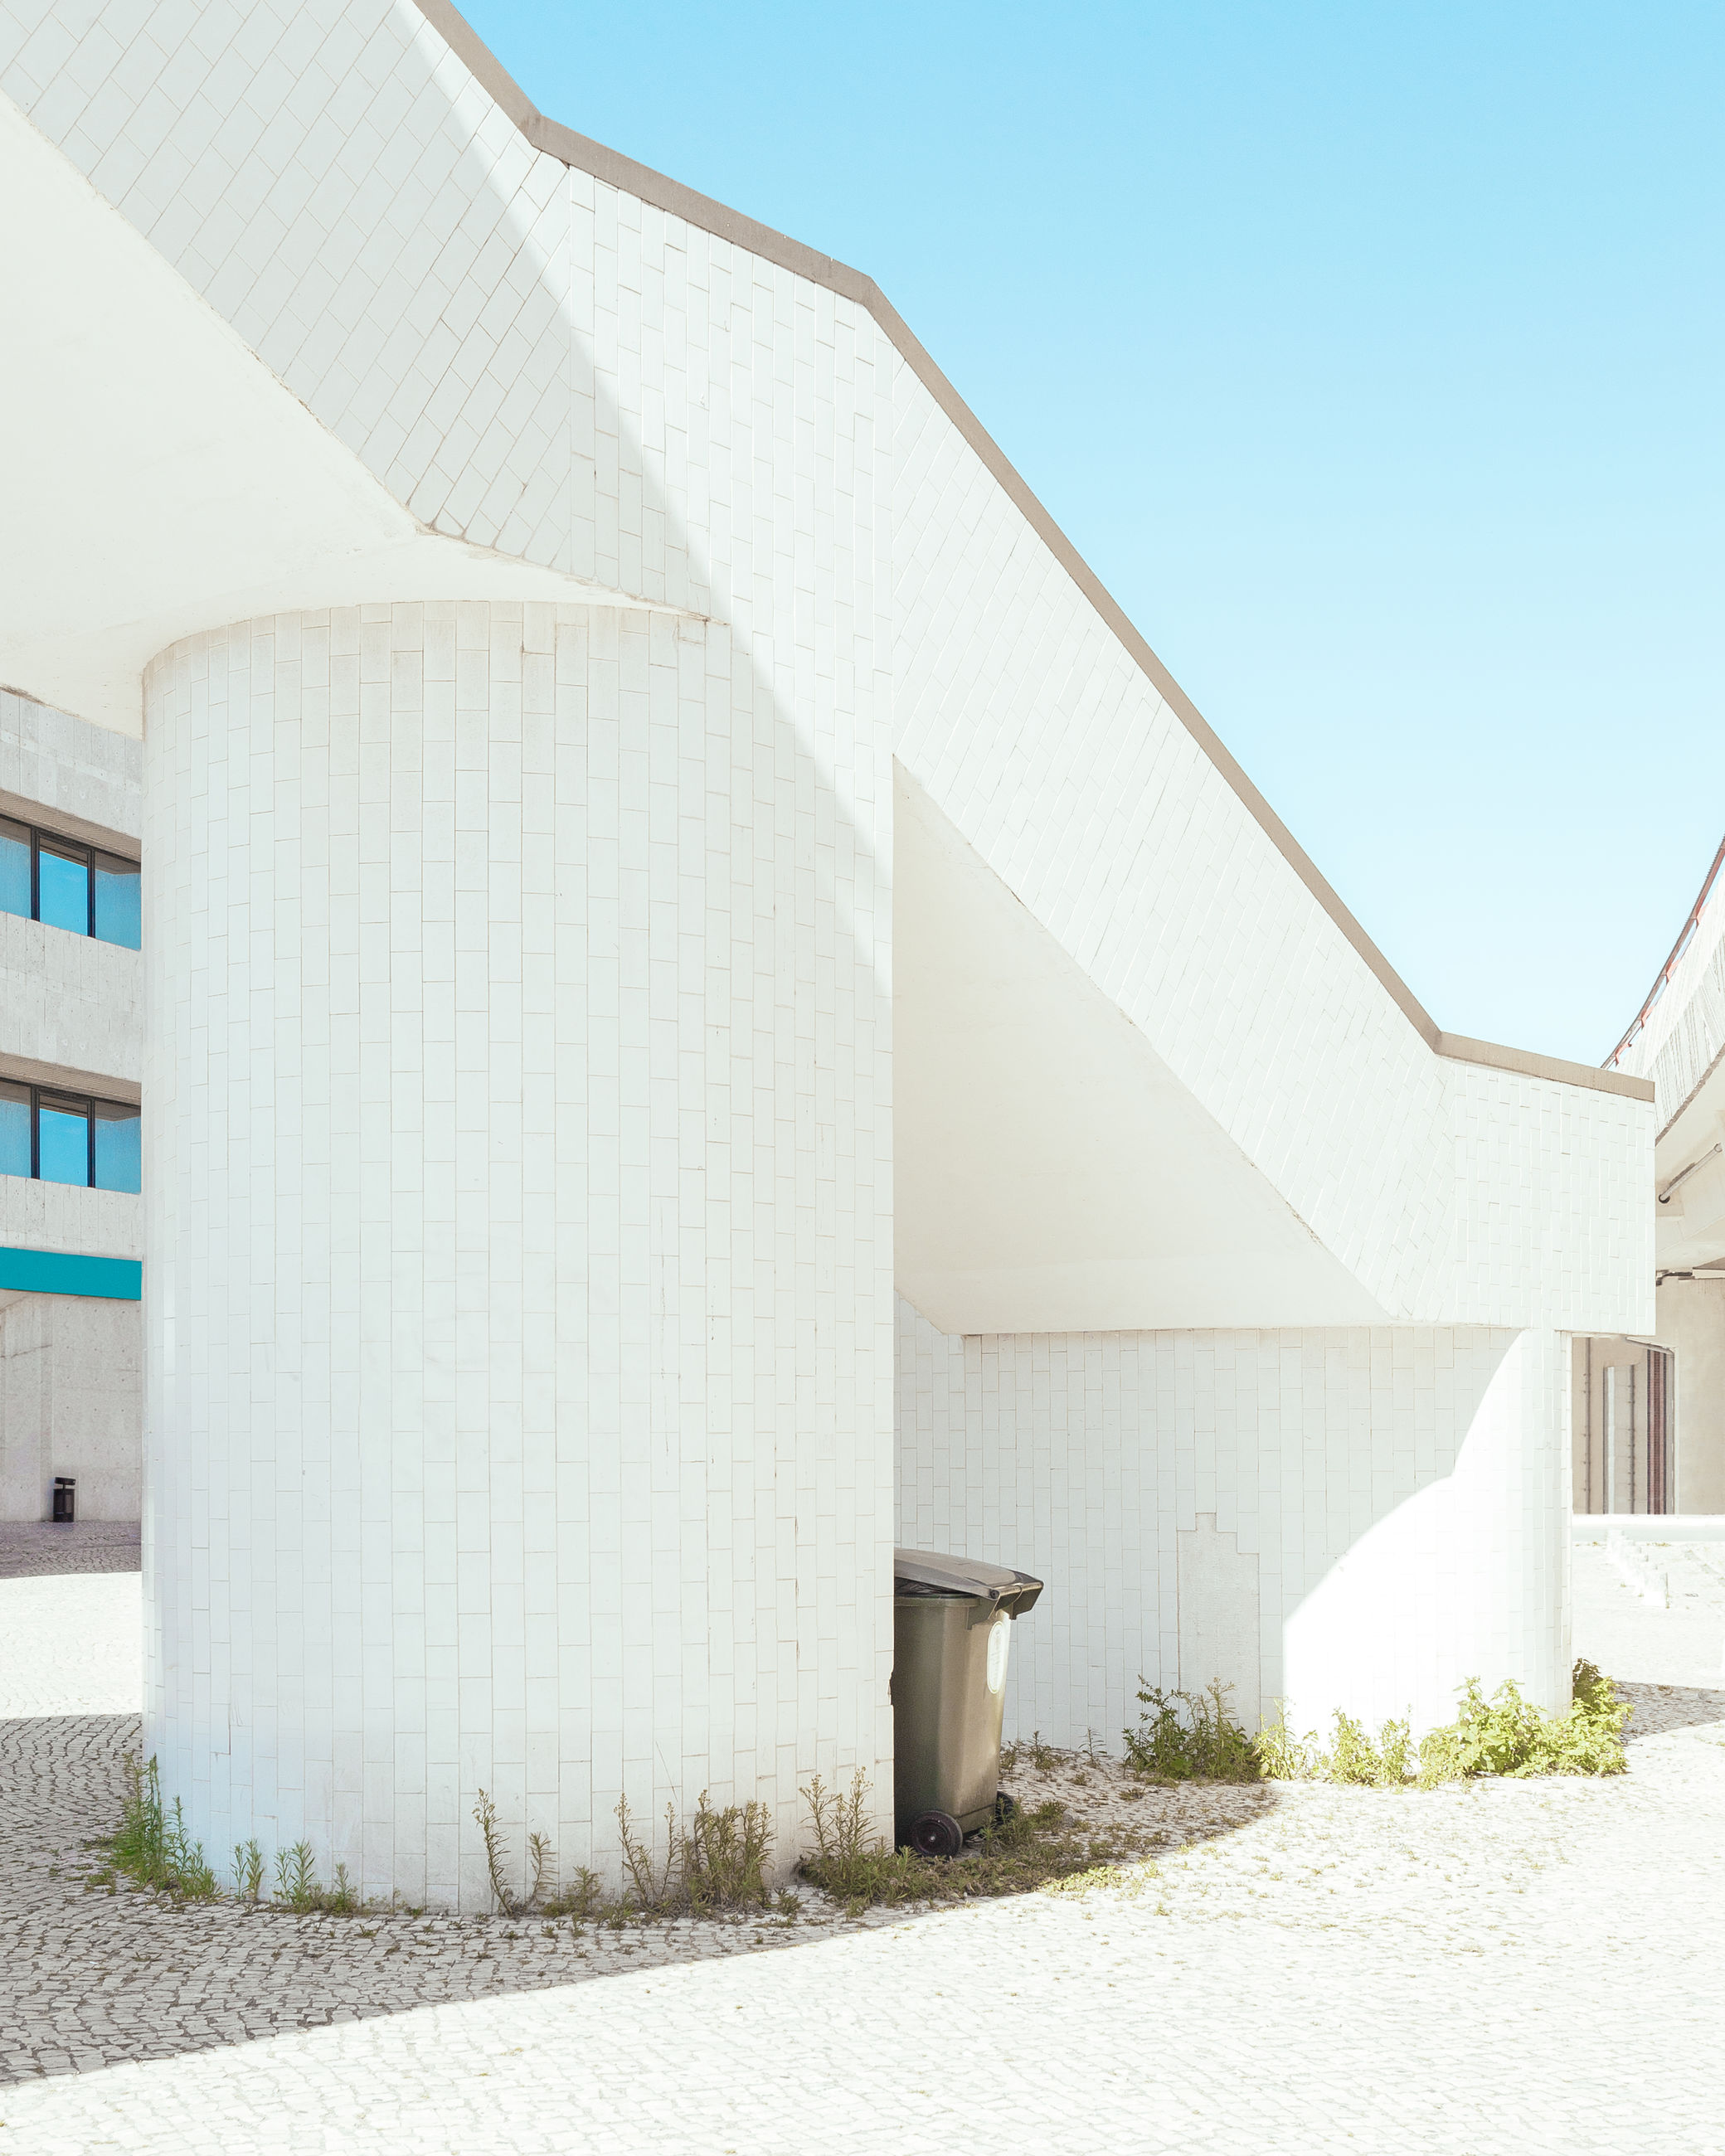 architecture, built structure, building exterior, sky, day, no people, white color, nature, clear sky, sunlight, building, outdoors, architectural column, wall - building feature, sunny, copy space, blue, exterior, plant, low angle view, garage